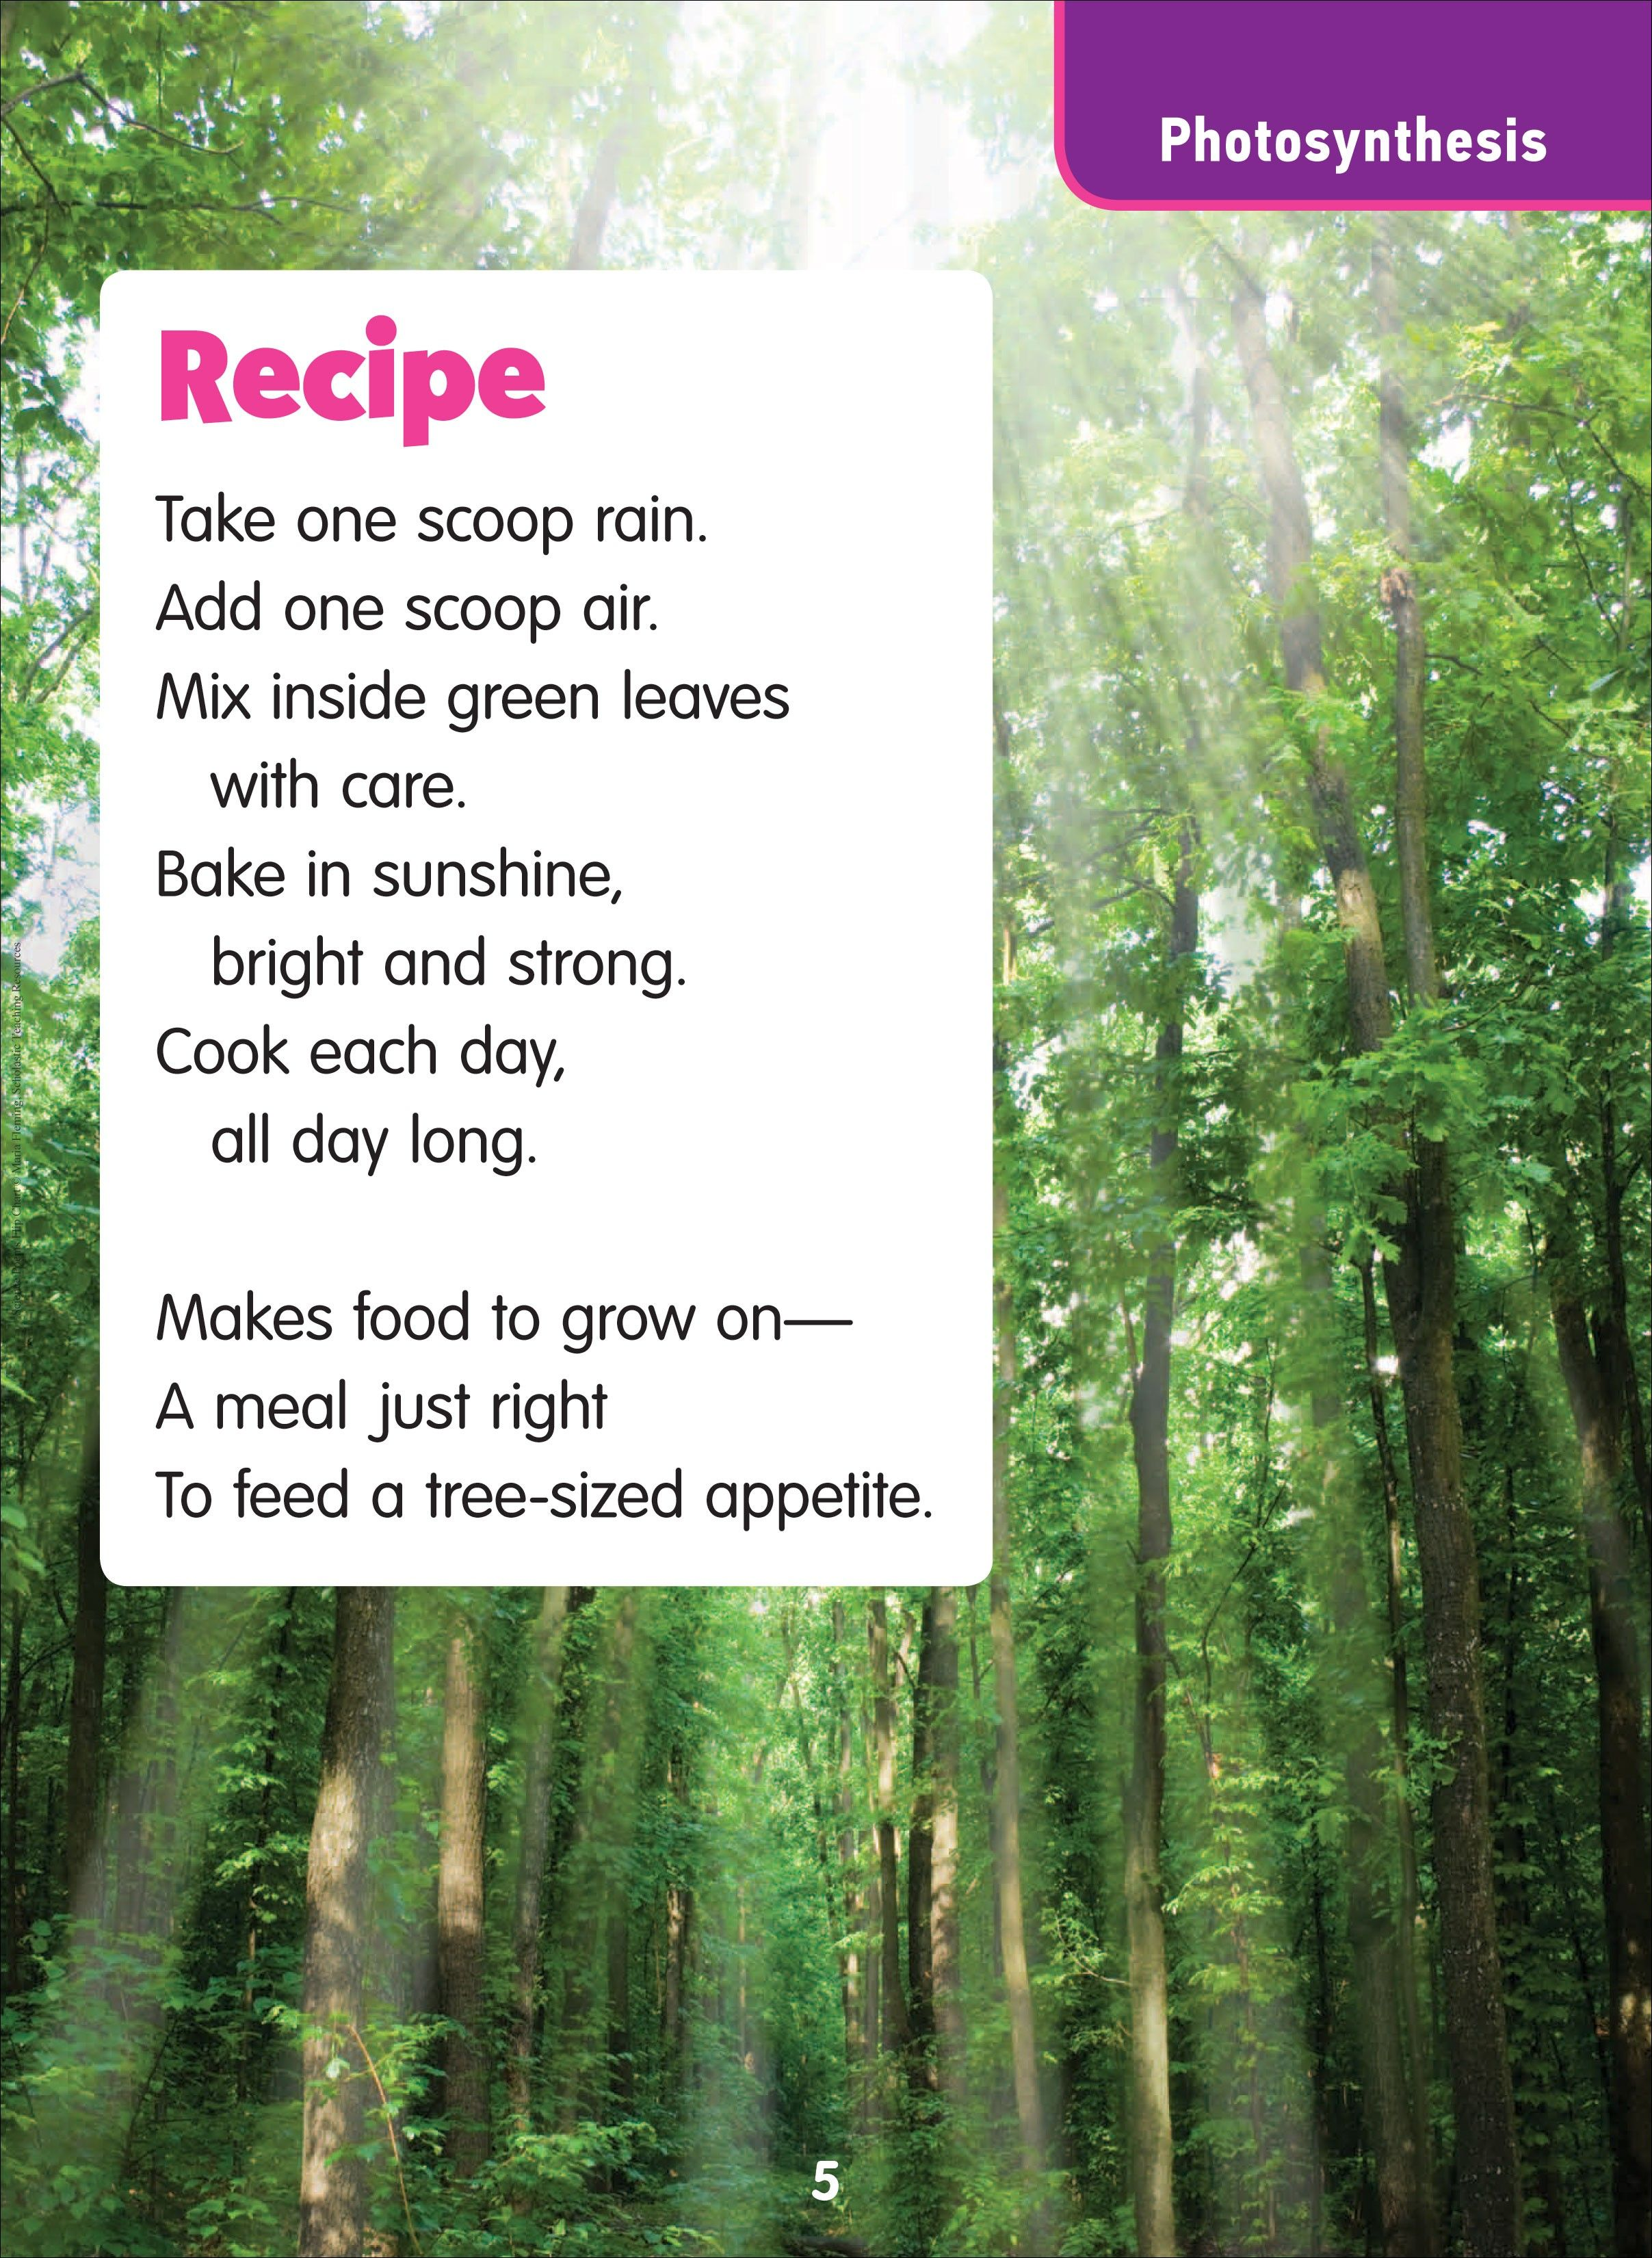 Photosynthesis Poem. #Poetry #Science. From Science Poems ...